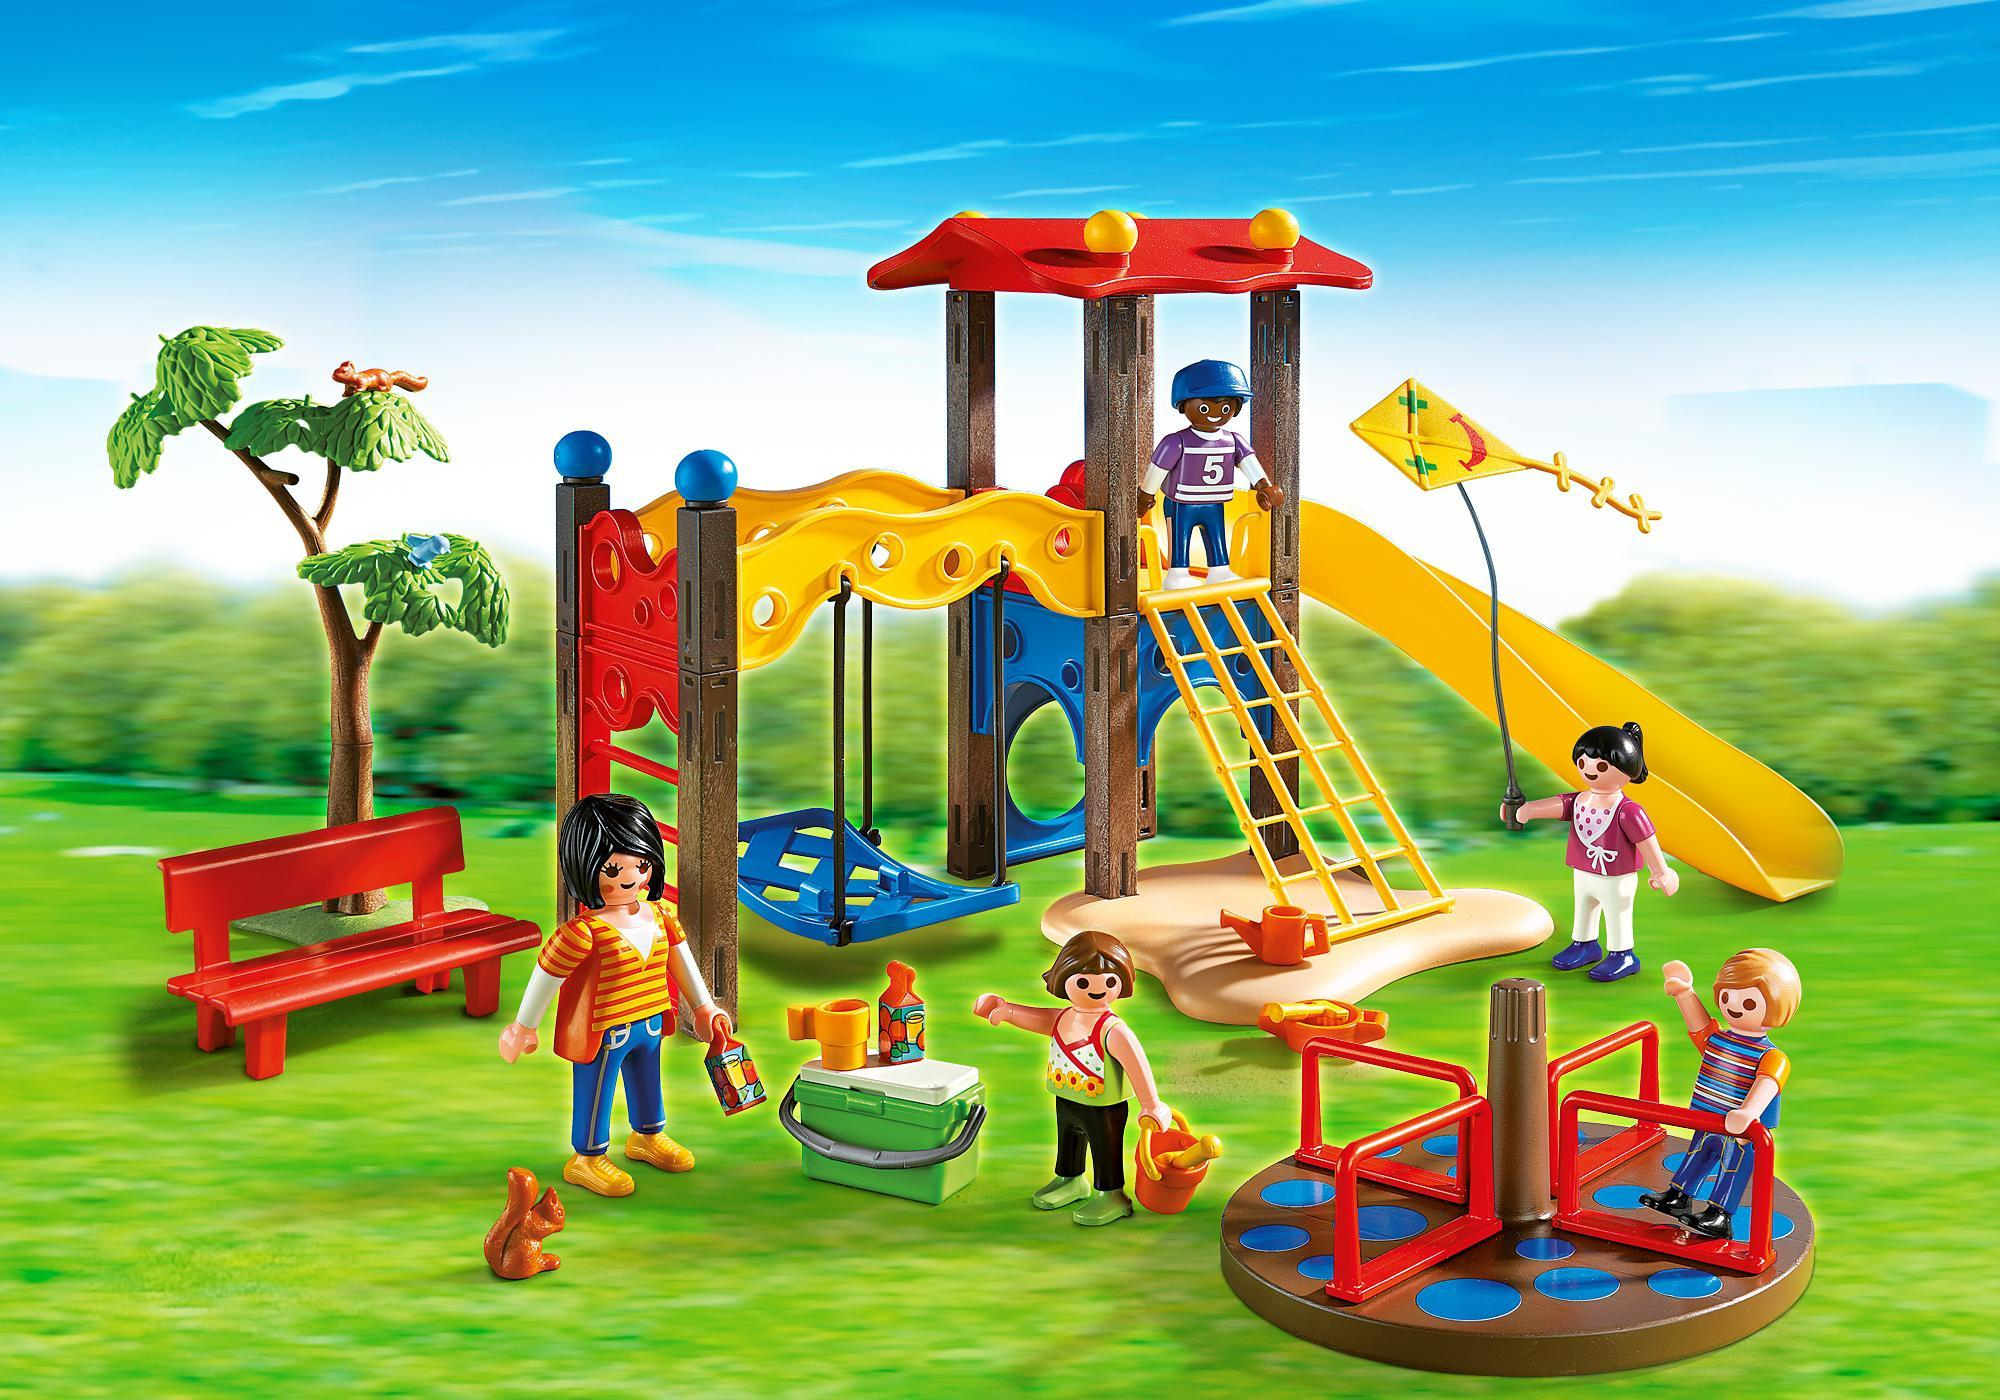 http://media.playmobil.com/i/playmobil/5612_product_detail/Playground